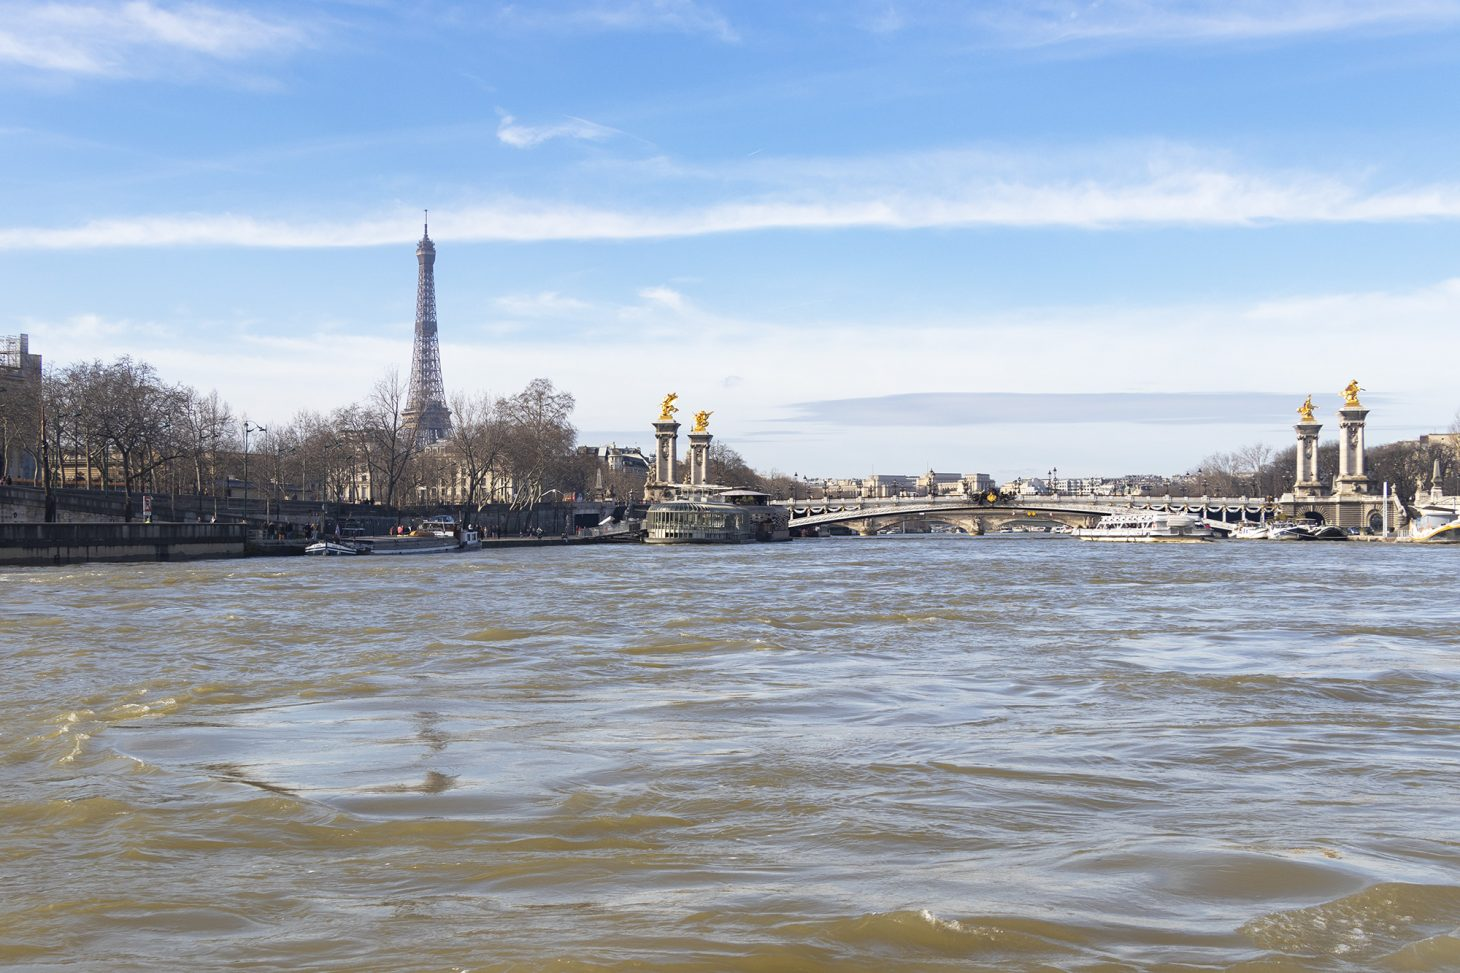 Seine River Cruise with Eiffel Tower, Paris